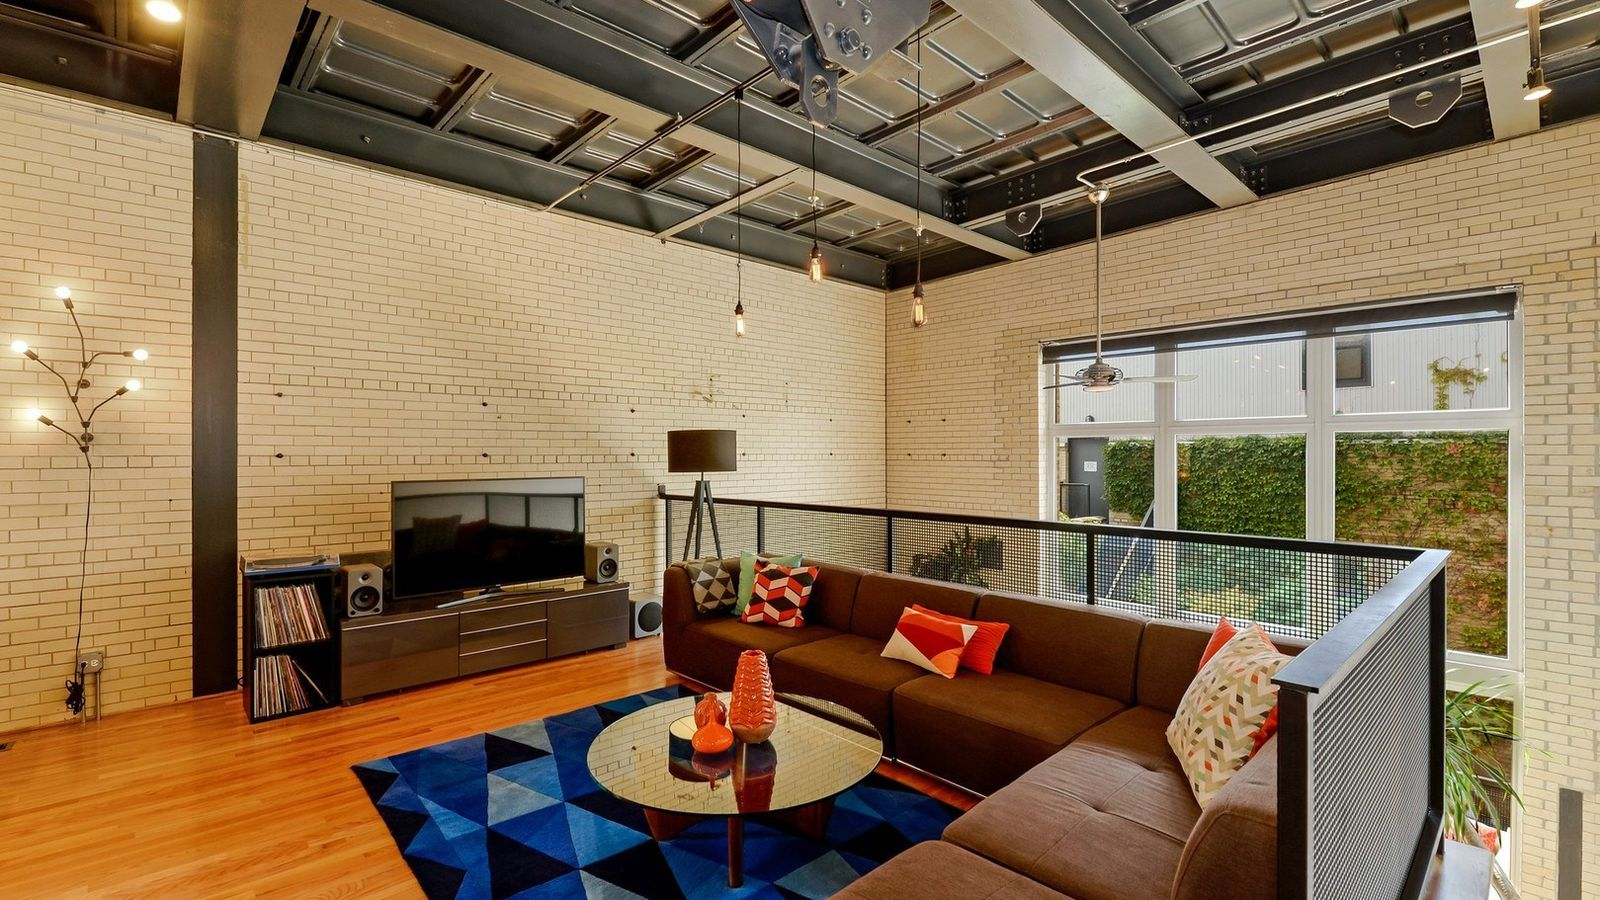 Edgewater Two Bedroom Condo In A Converted Substation Lists For 375k Curbed Chicago